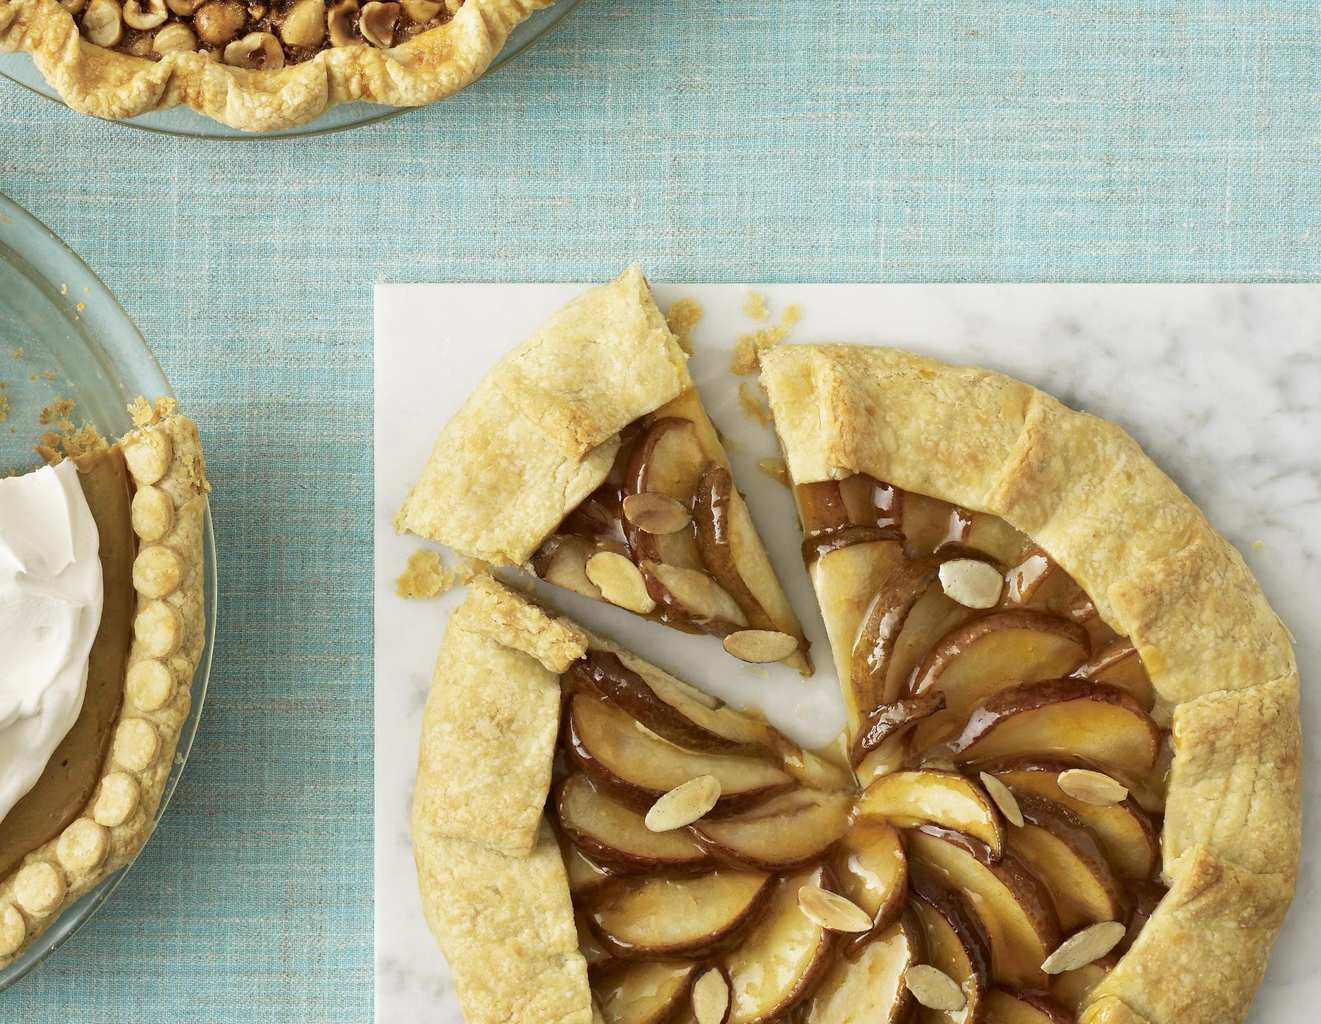 Pear Almond Frangipane Crostata is the perfect combination of sweet almond filling and juicy pears.